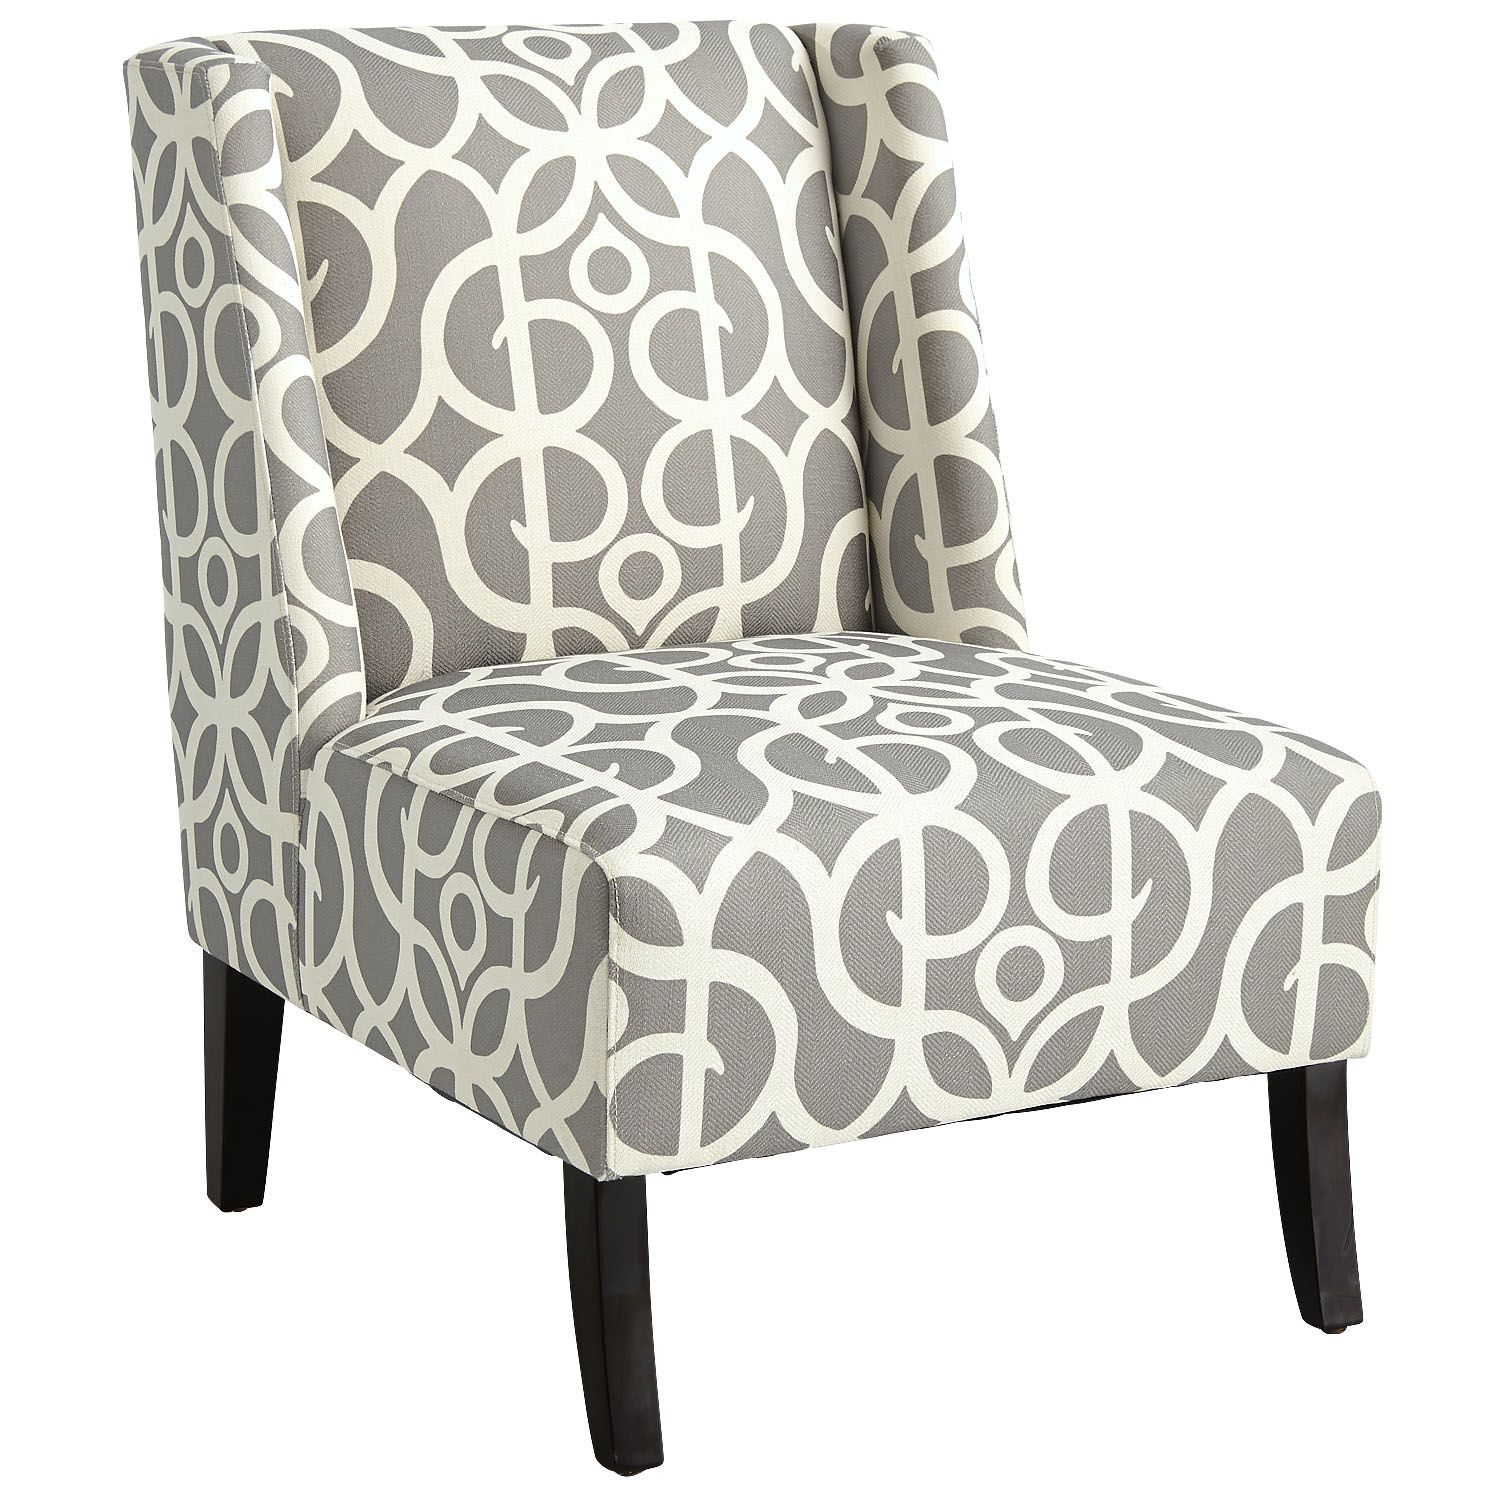 Owen Wing Chair Metro Pewter Pier 1 Imports Chair